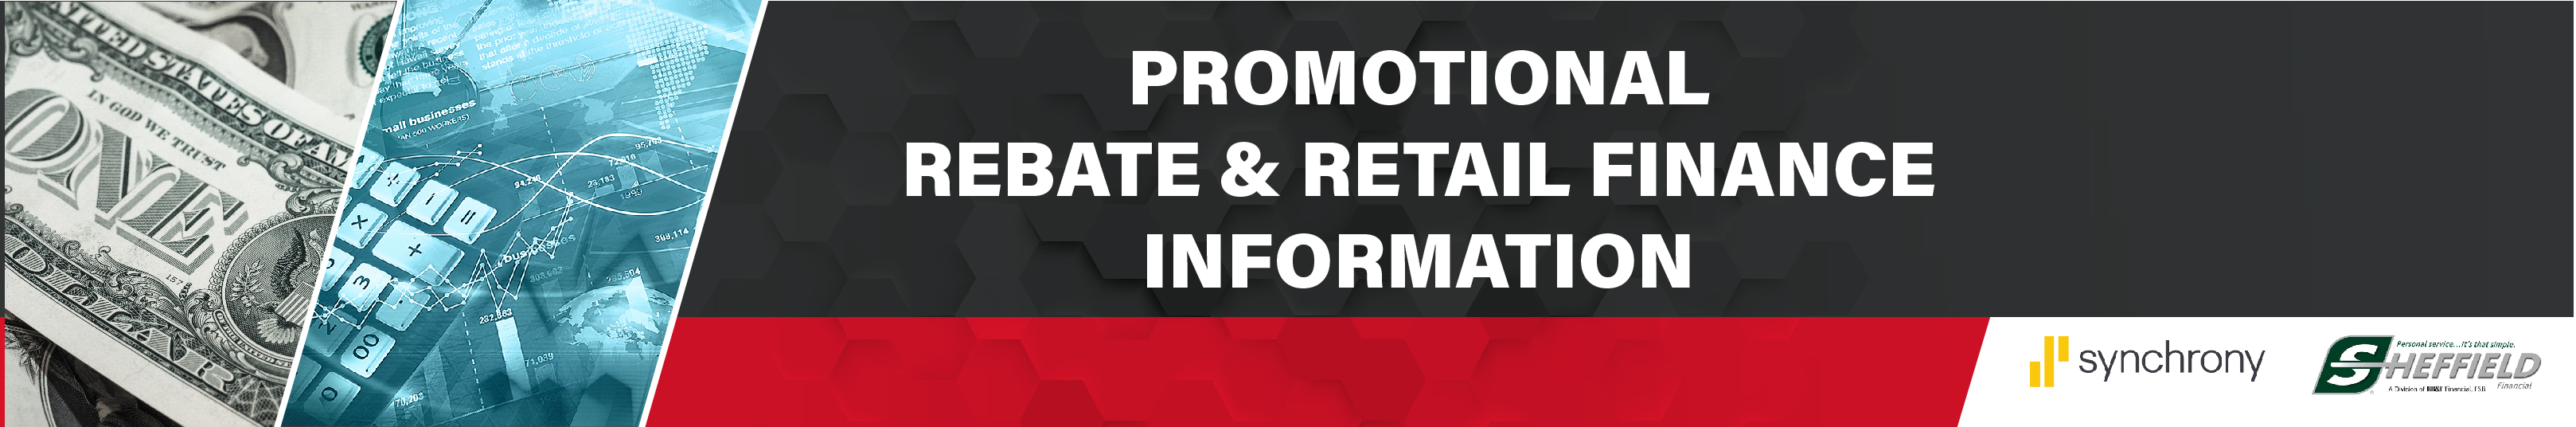 Promotional Rebate and Retail Finance Information